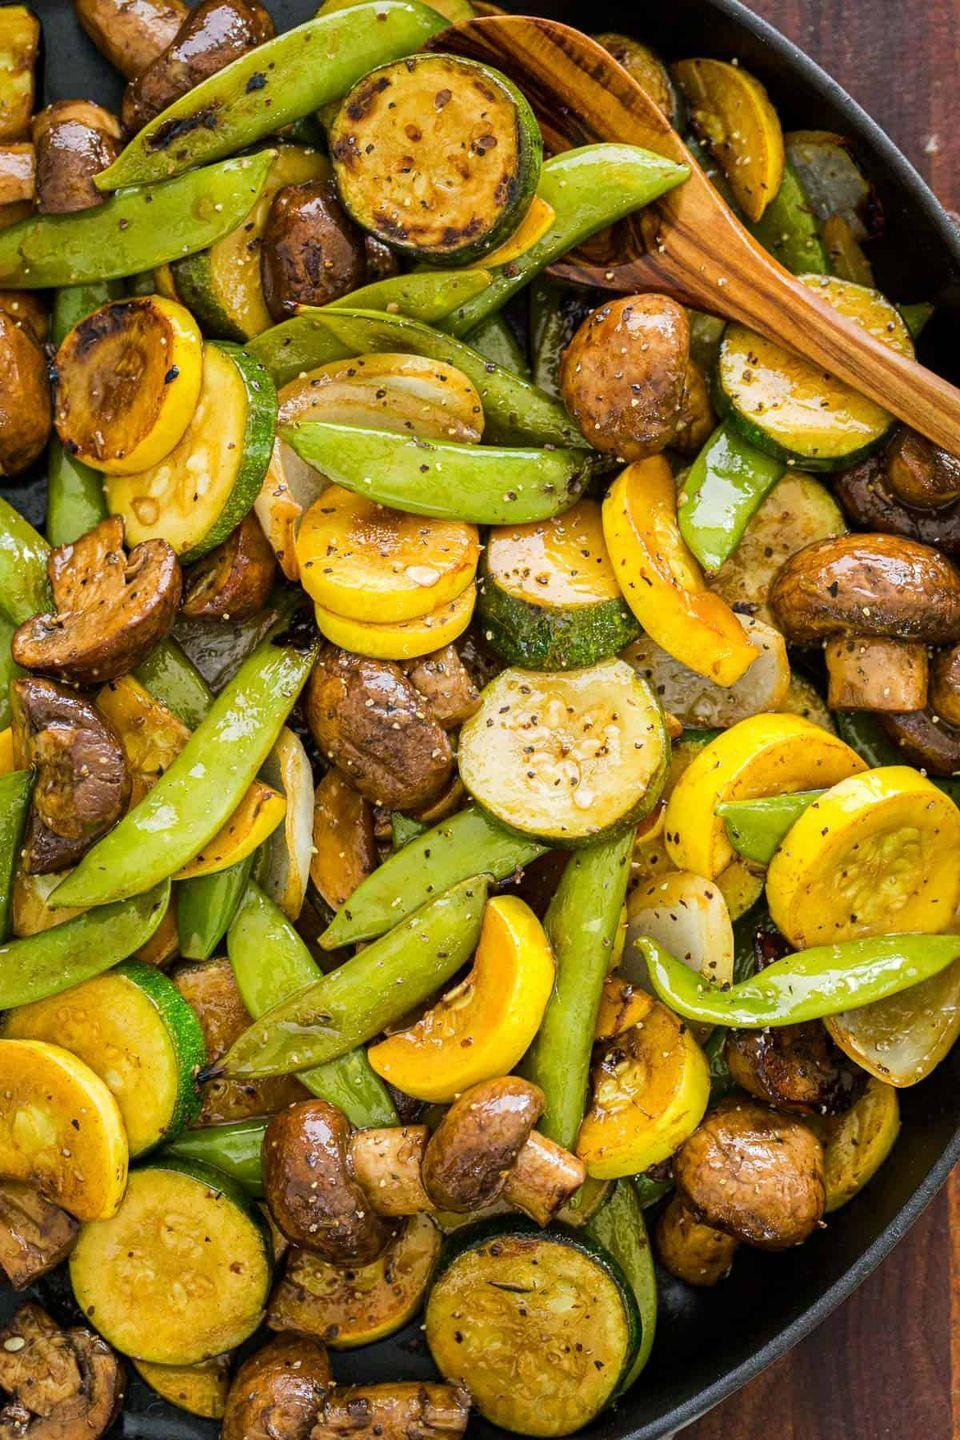 """<p>A homemade balsamic dressing quickly elevates your standard grouping of grilled vegetables. And, best of all, the recipe is easily adaptable to whatever produce you have on hand. </p><p><a href=""""https://natashaskitchen.com/balsamic-grilled-vegetables/"""" rel=""""nofollow noopener"""" target=""""_blank"""" data-ylk=""""slk:Get the recipe."""" class=""""link rapid-noclick-resp"""">Get the recipe. </a></p>"""